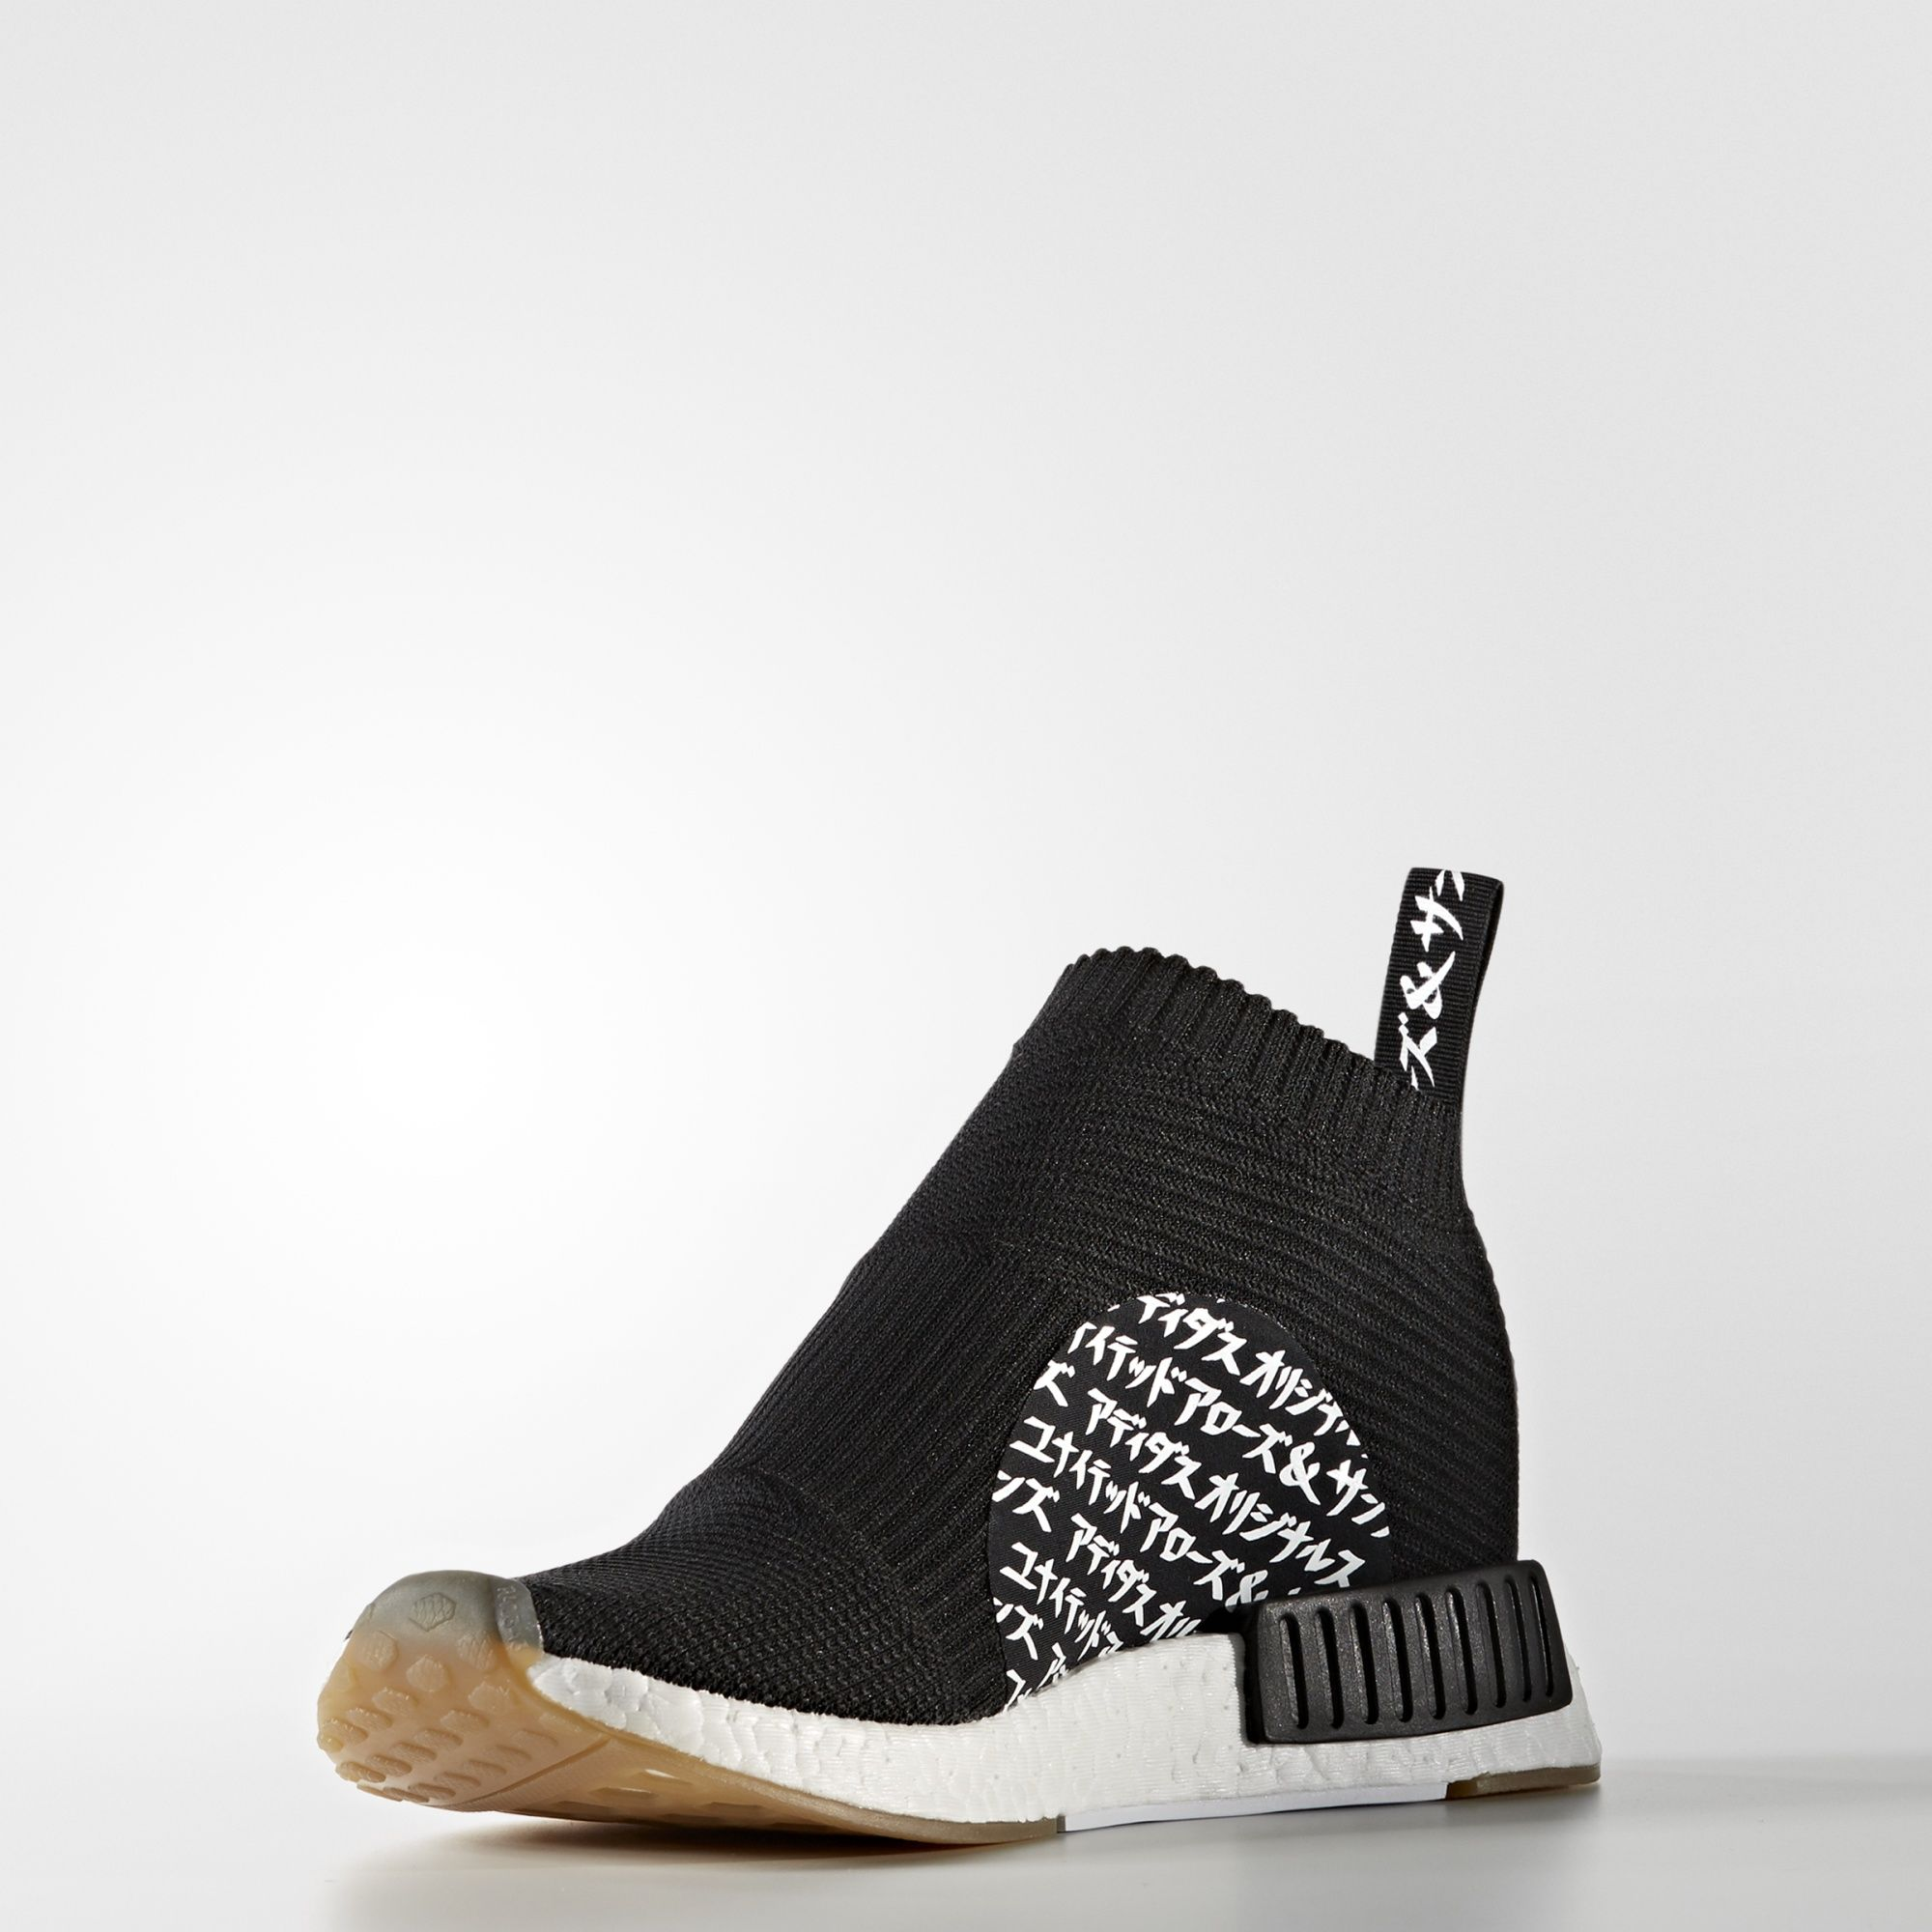 9868290fa Adidas Adidas NMD CS1 x United Arrows   Sons US 10.5 · UK 10 · EU ...